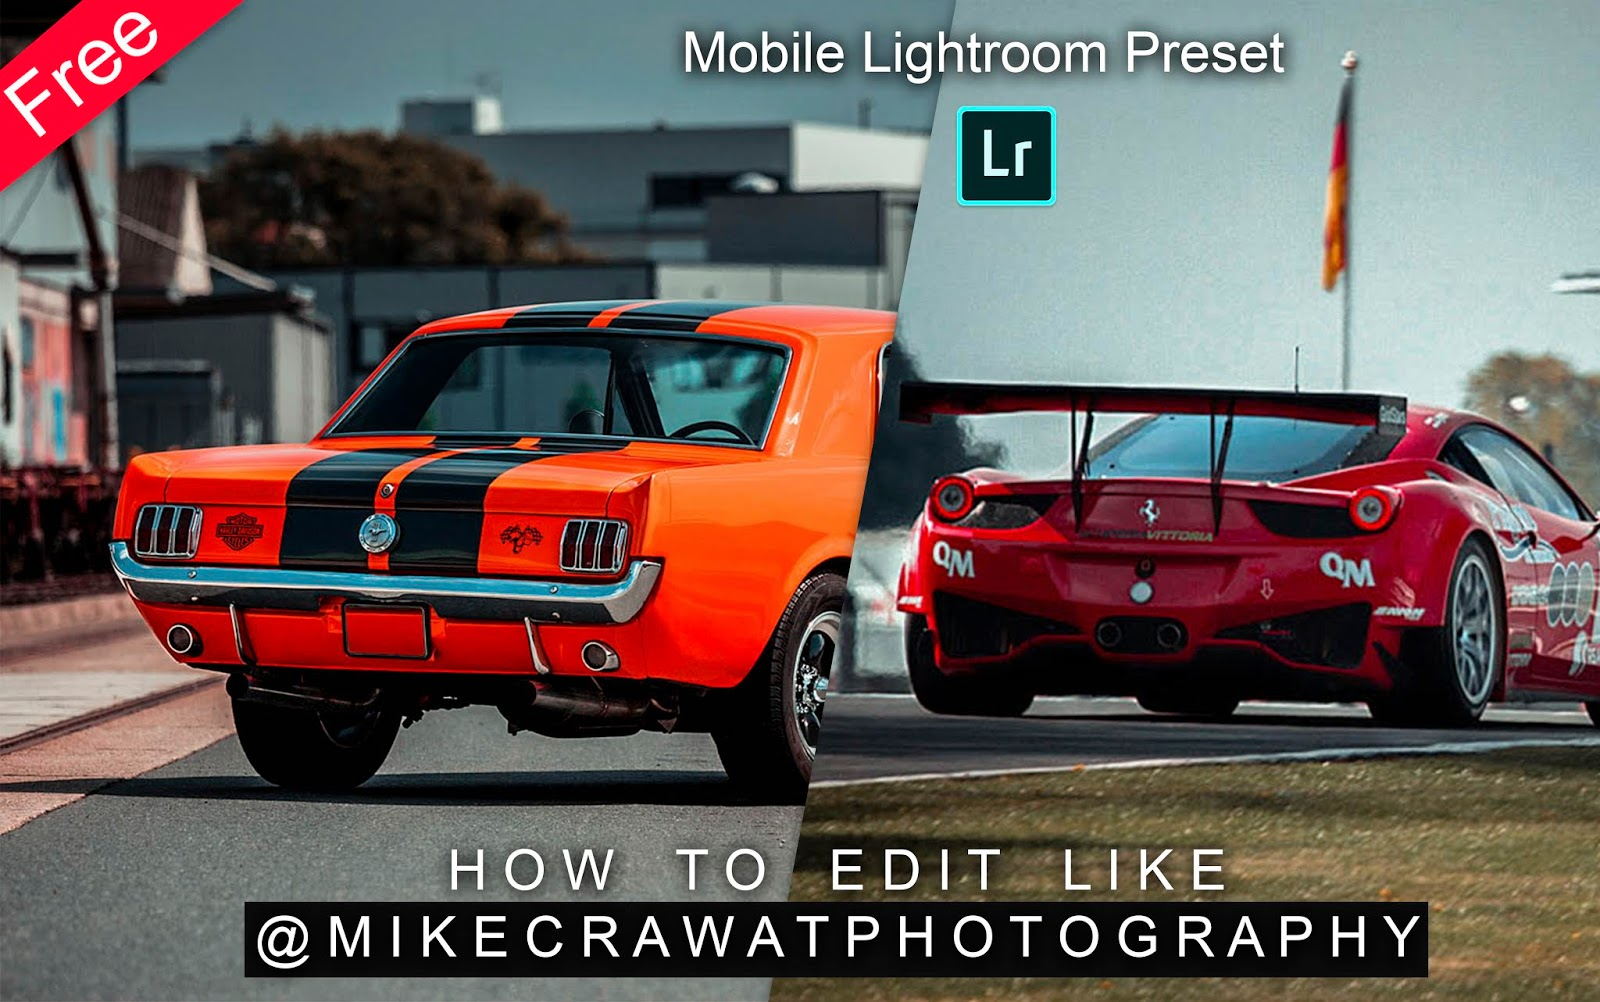 Download Mikecrawatphotography Inspired Mobile Lightroom Preset for Free | How to Edit Photos Like Mikecrawatphotography in Mobile Lightroom App